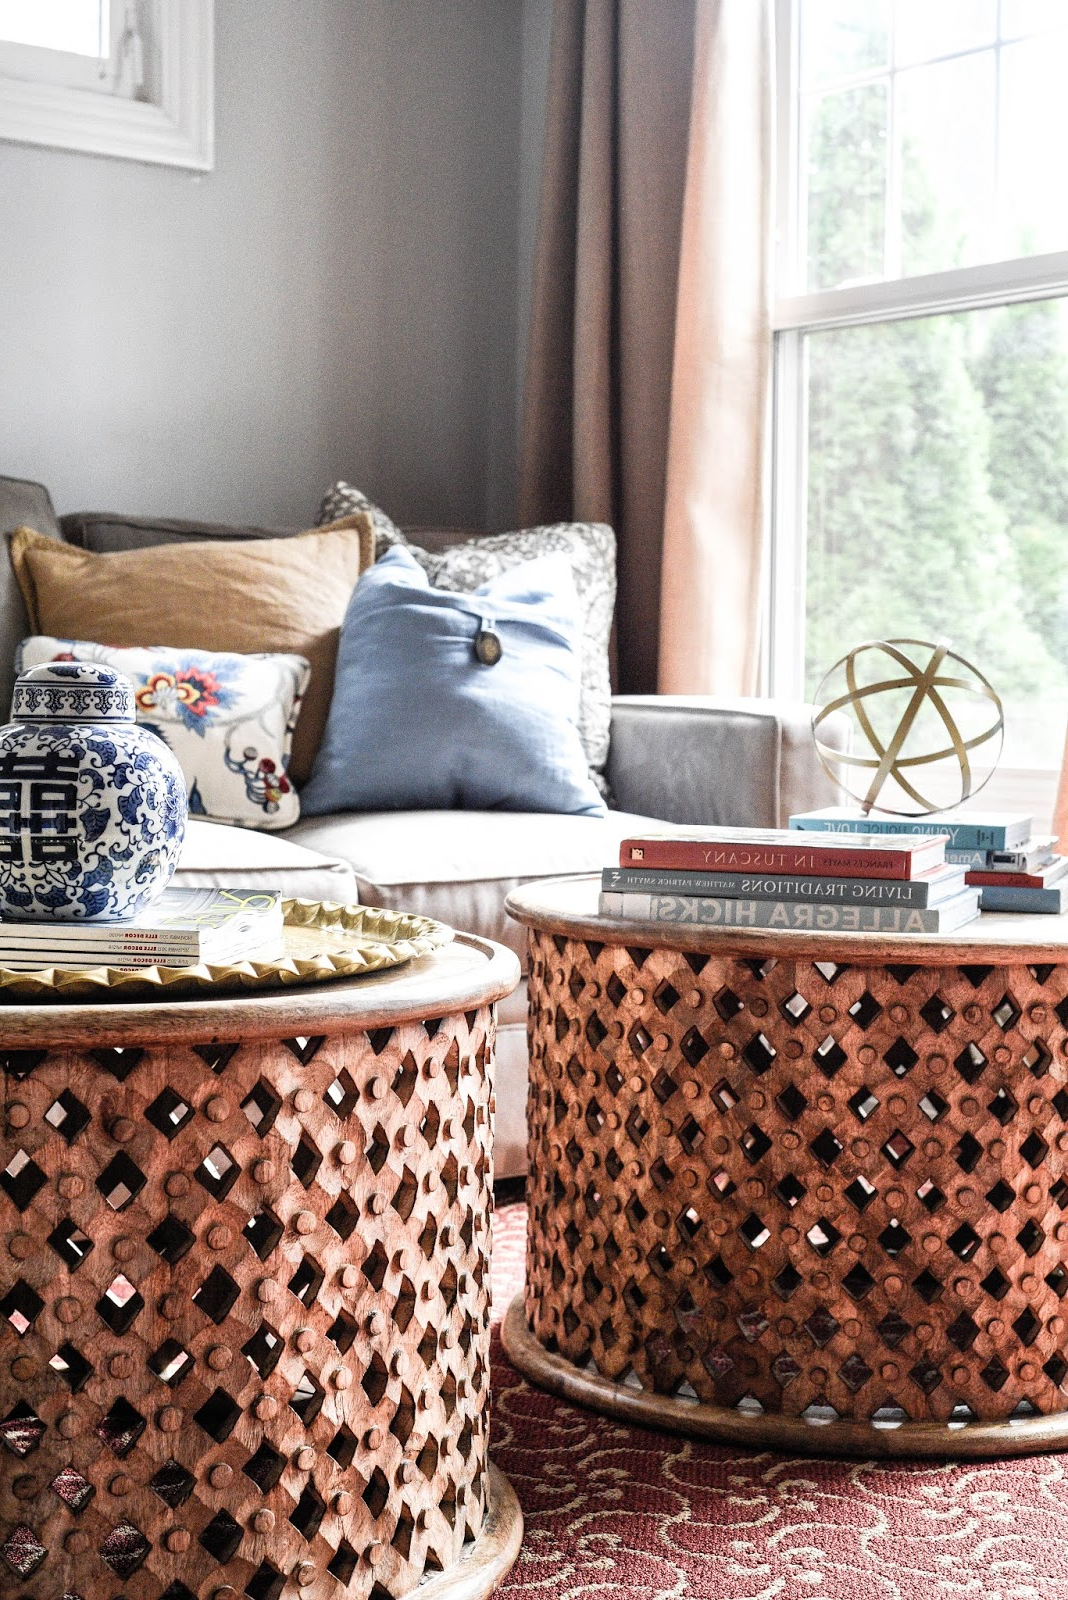 Recent Carved Wood Tribal Coffee Tables – Home With Keki Throughout Round Carved Wood Coffee Tables (View 16 of 20)